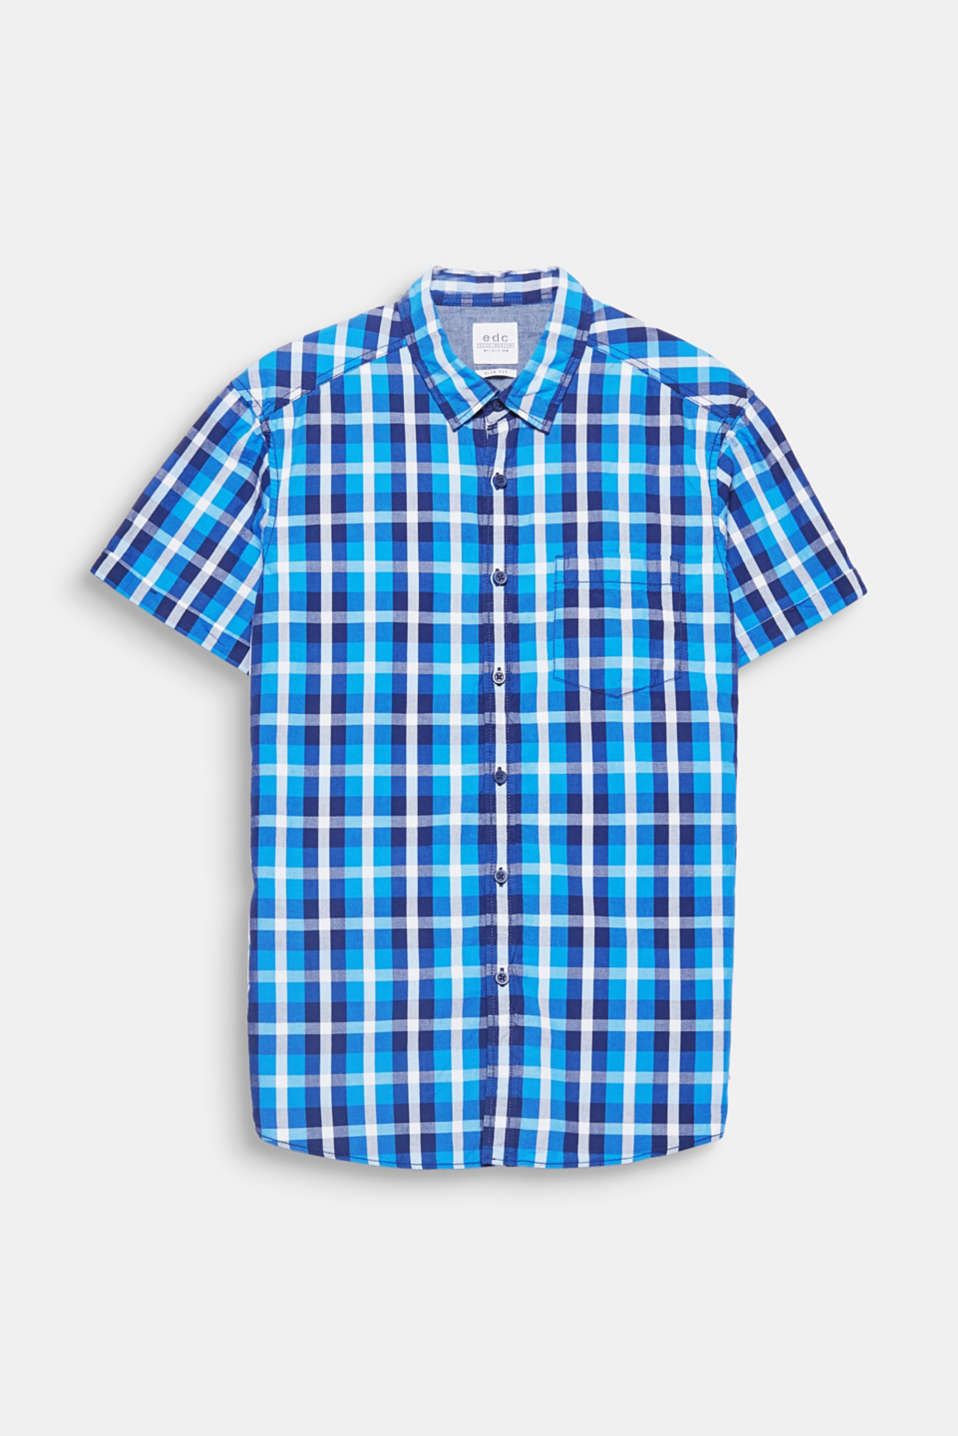 Trendy colours and a distinctive checked pattern give this short sleeve shirt its striking look.